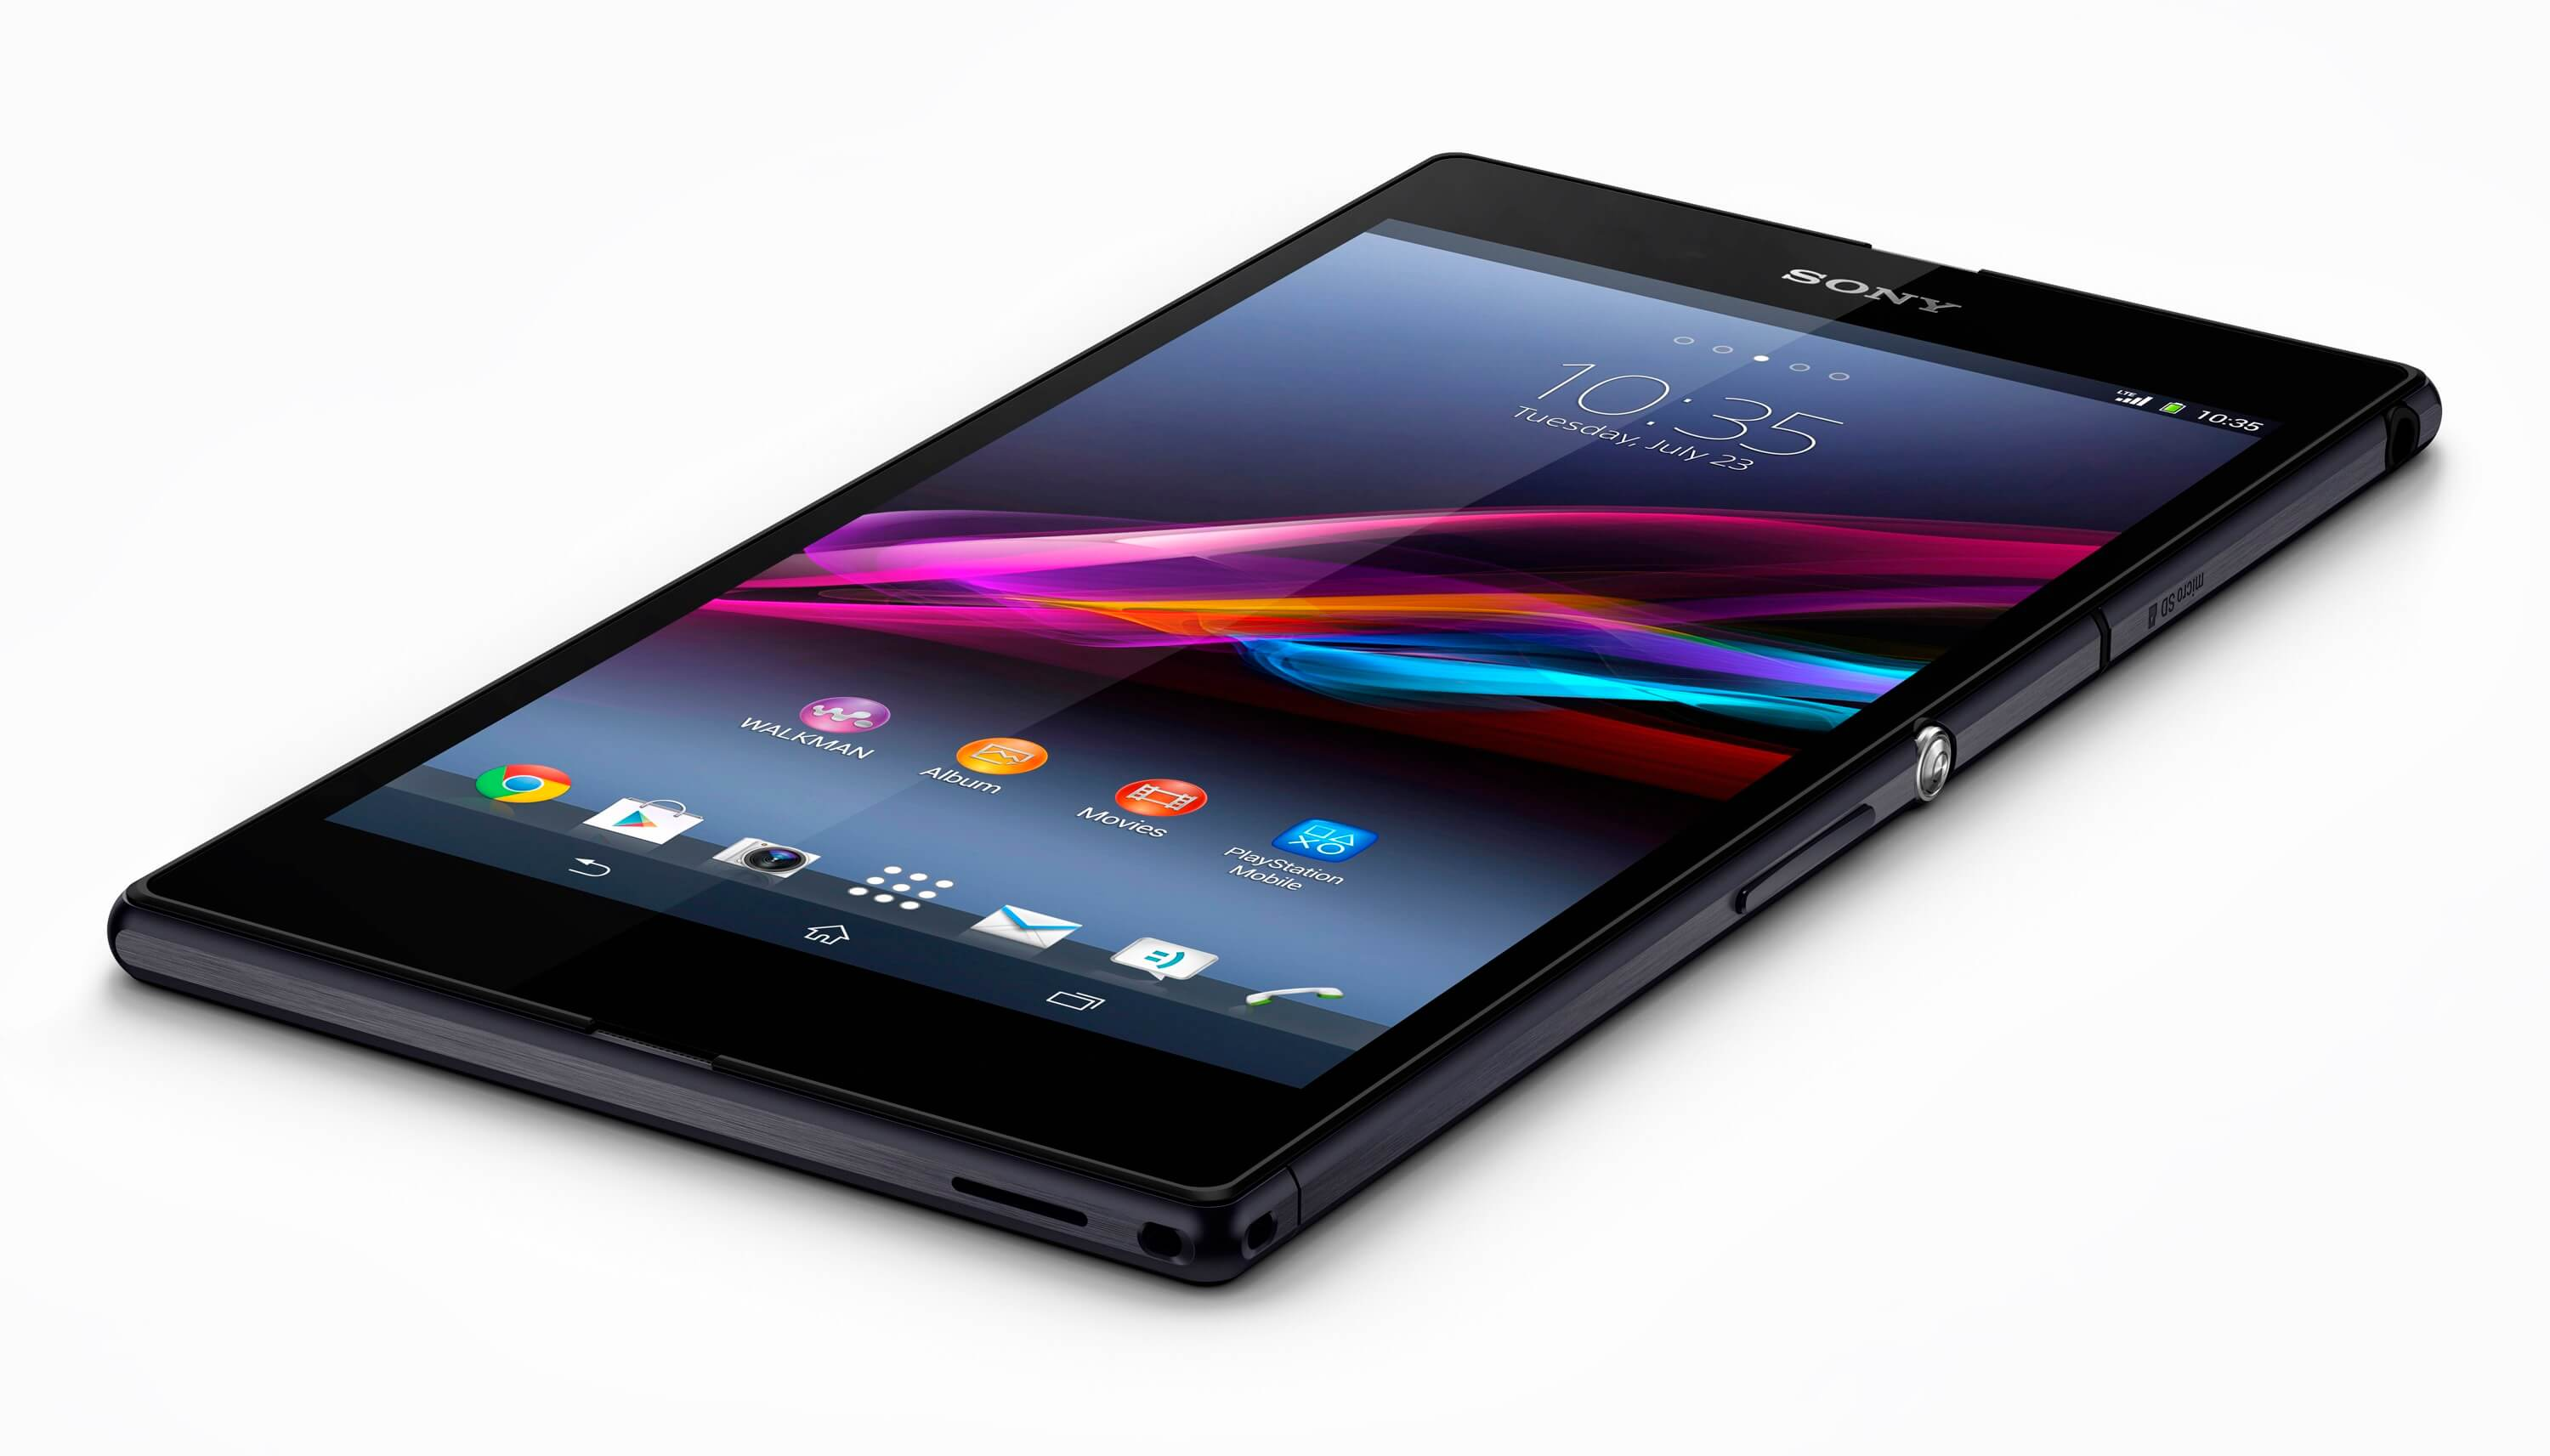 Install eXistenZ Ultra Edition Android 7.0 Nougat Custom ROM on Xperia Z